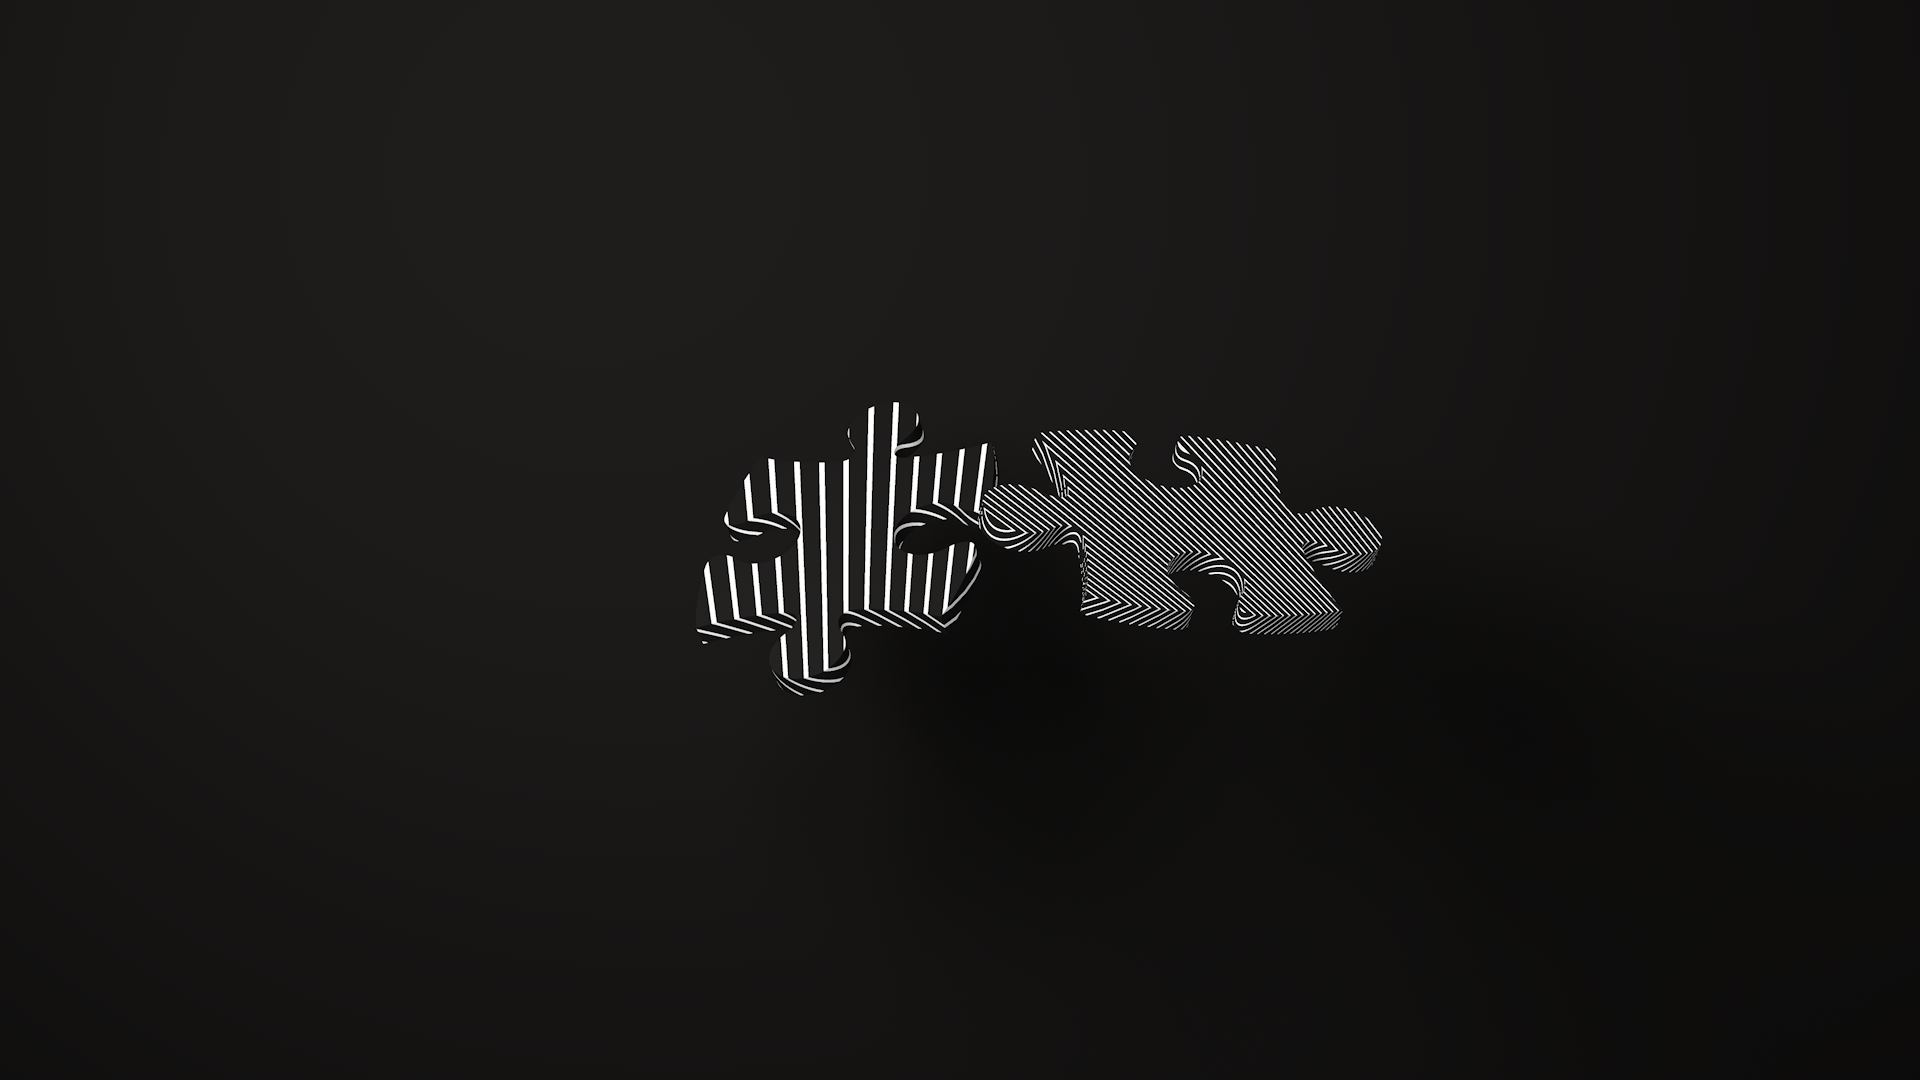 Puzzle_001.png